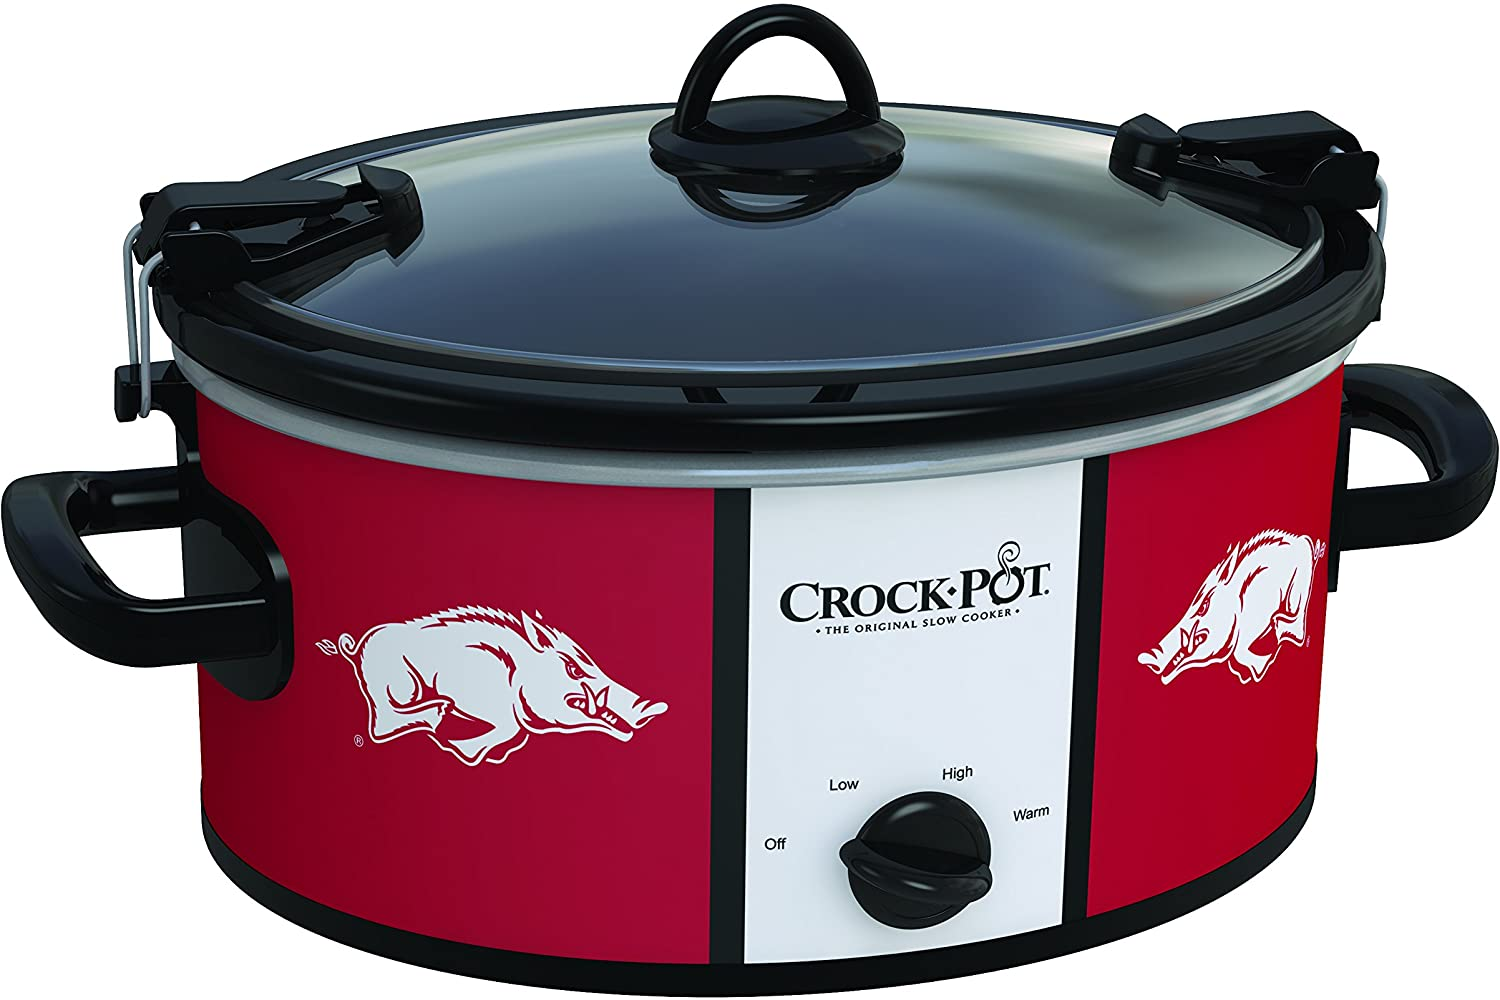 Crockpot SCCPNCAA600-UAR Cook and Carry Slow Cooker, 6 quart, University of Arkansas,Maroon/White